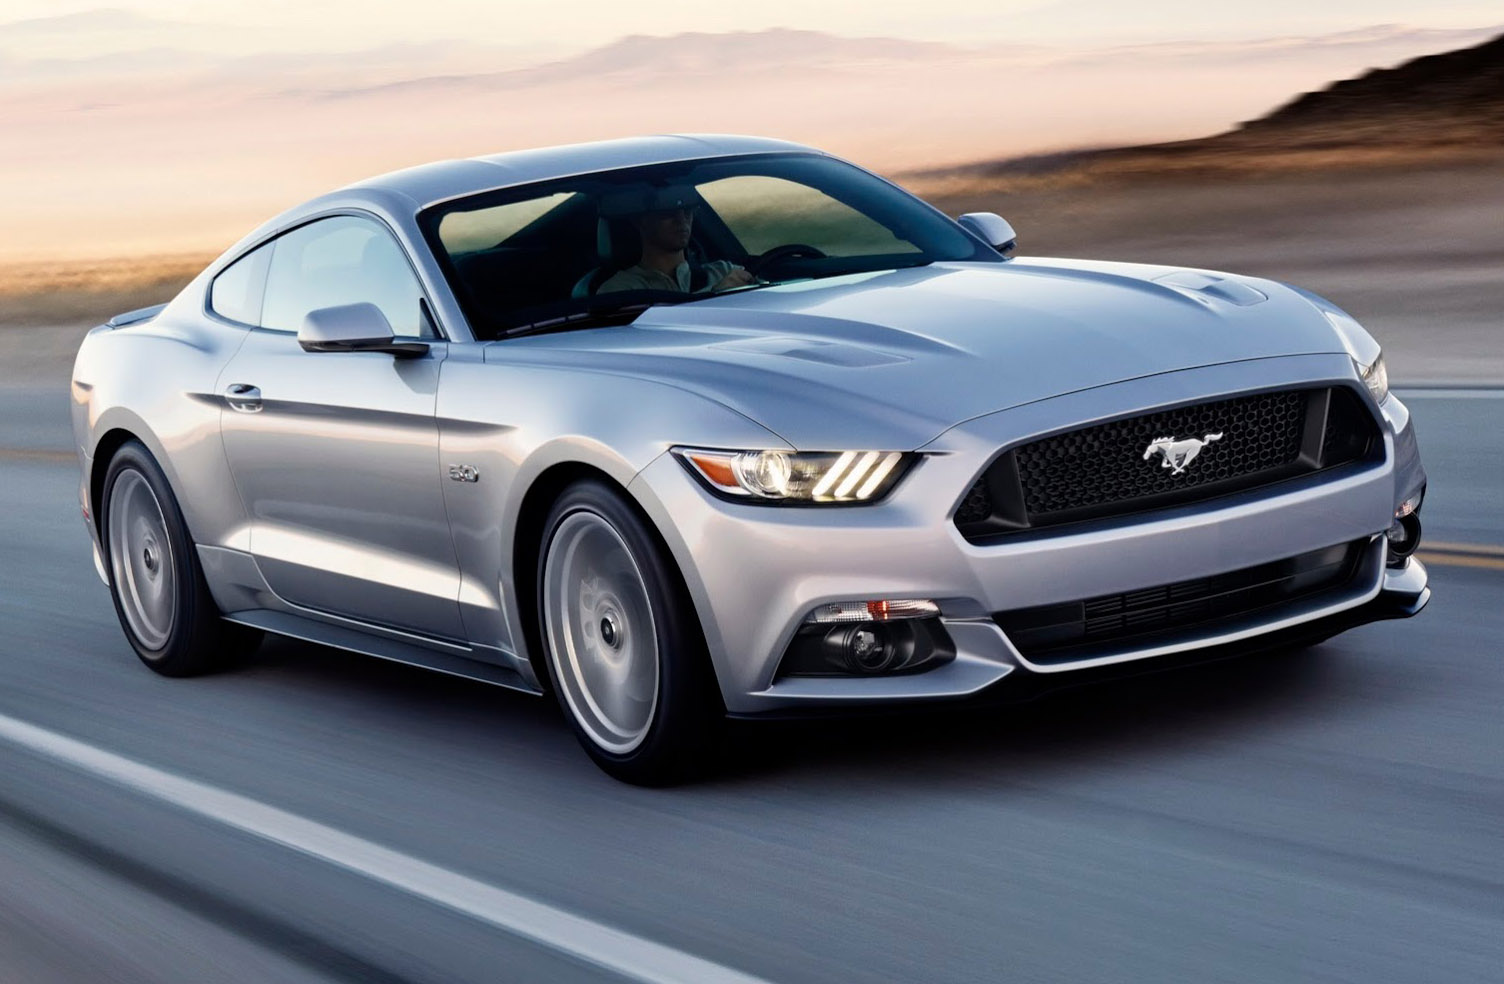 2014 Ford Mustang #4